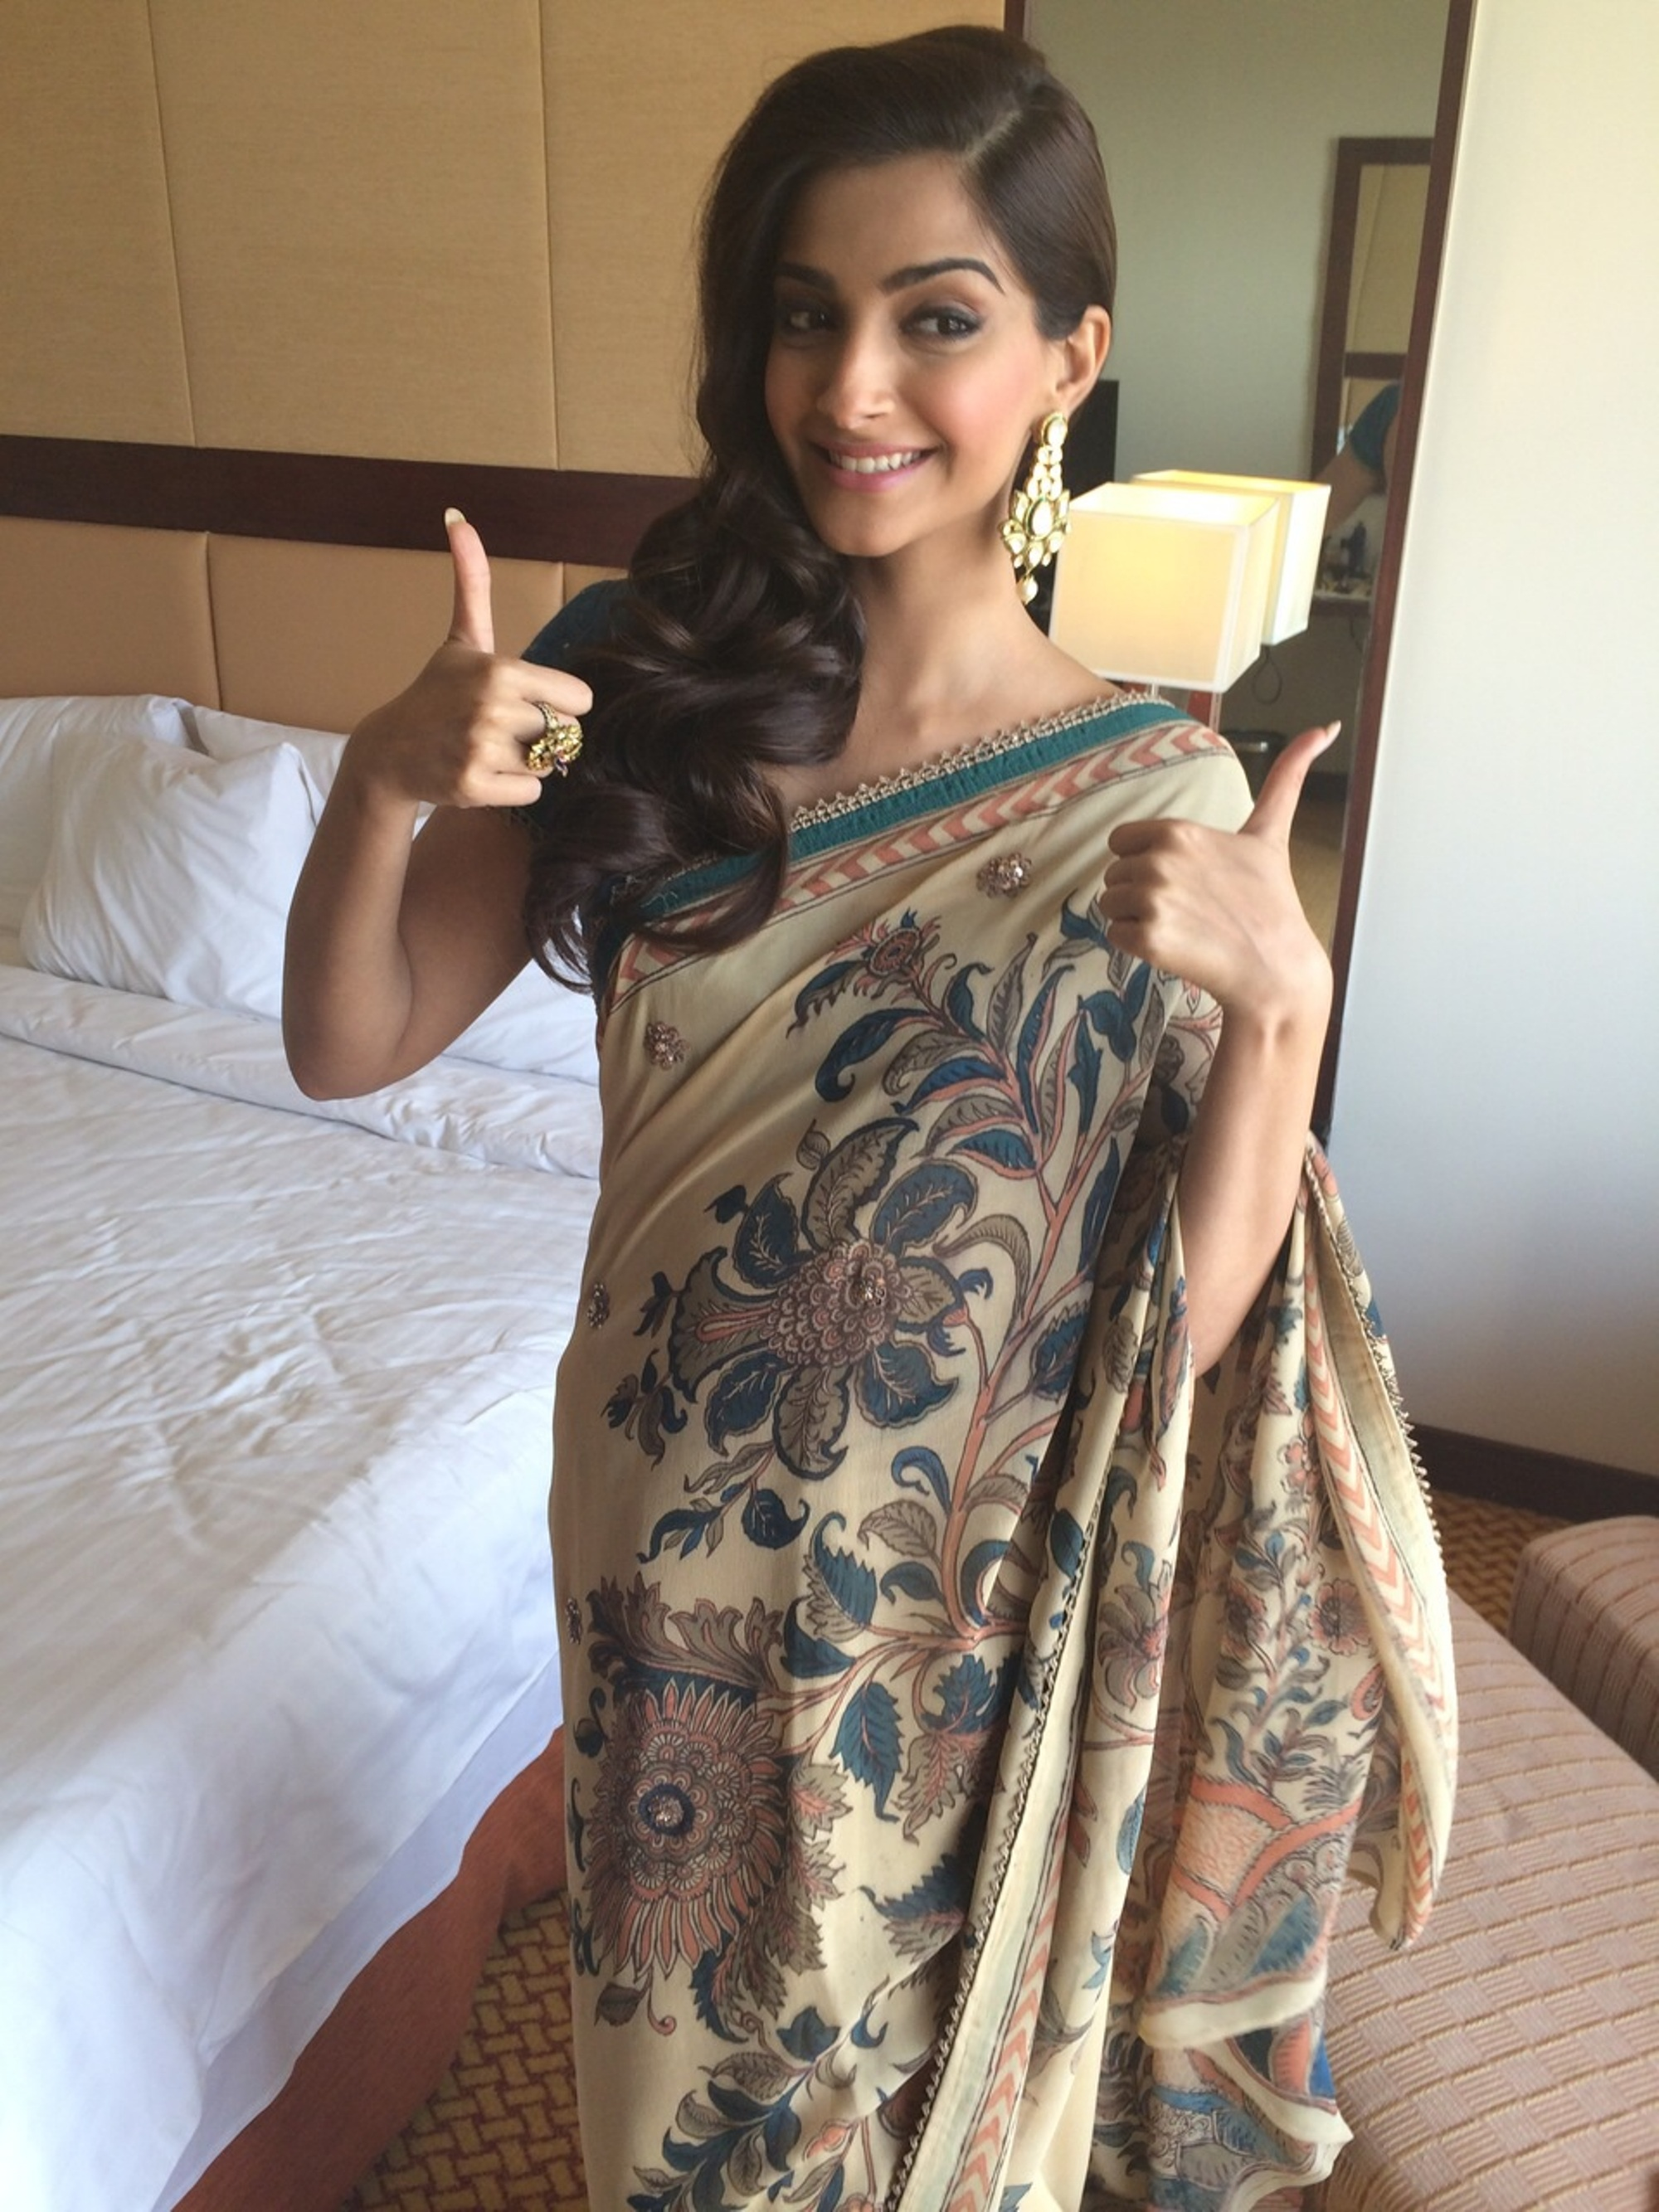 public://images/exec-life-images/2015/02/05/Sonam Kapoor in Amar Ghanasingh jewellery in Ahmedabad for her movie promotions.jpeg